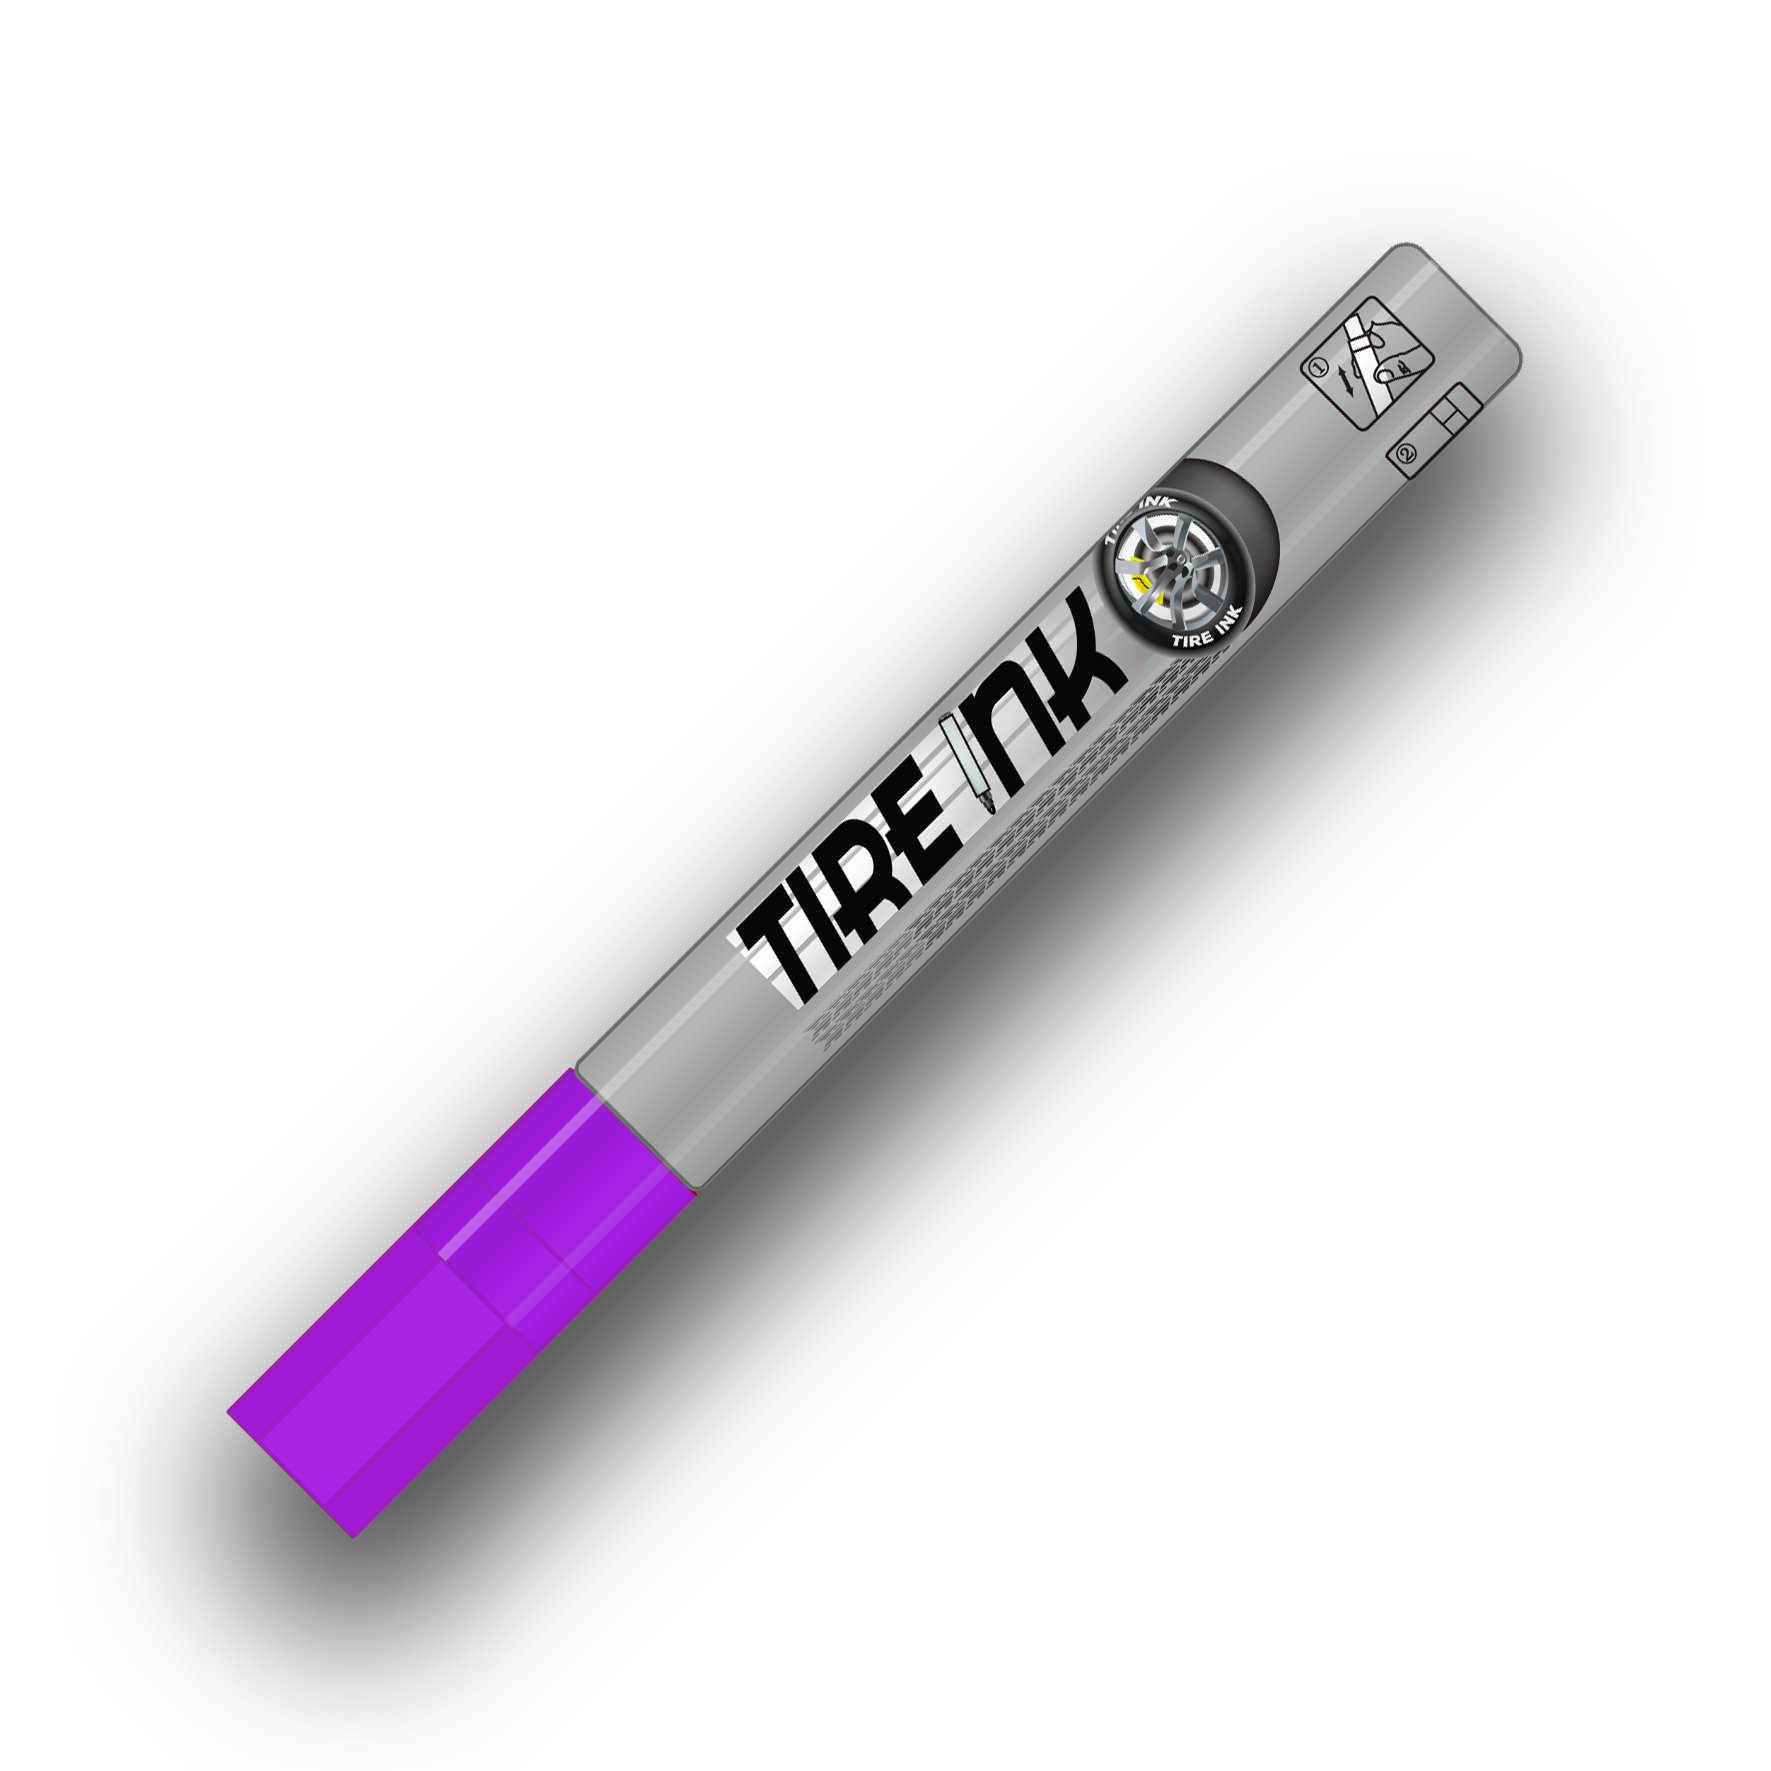 Tire Ink Paint Pen For Car Tires | Permanent and Waterproof | Carwash Safe | 8 Colors Available. (Purple, 1 Pen) by Tire Ink (Image #2)